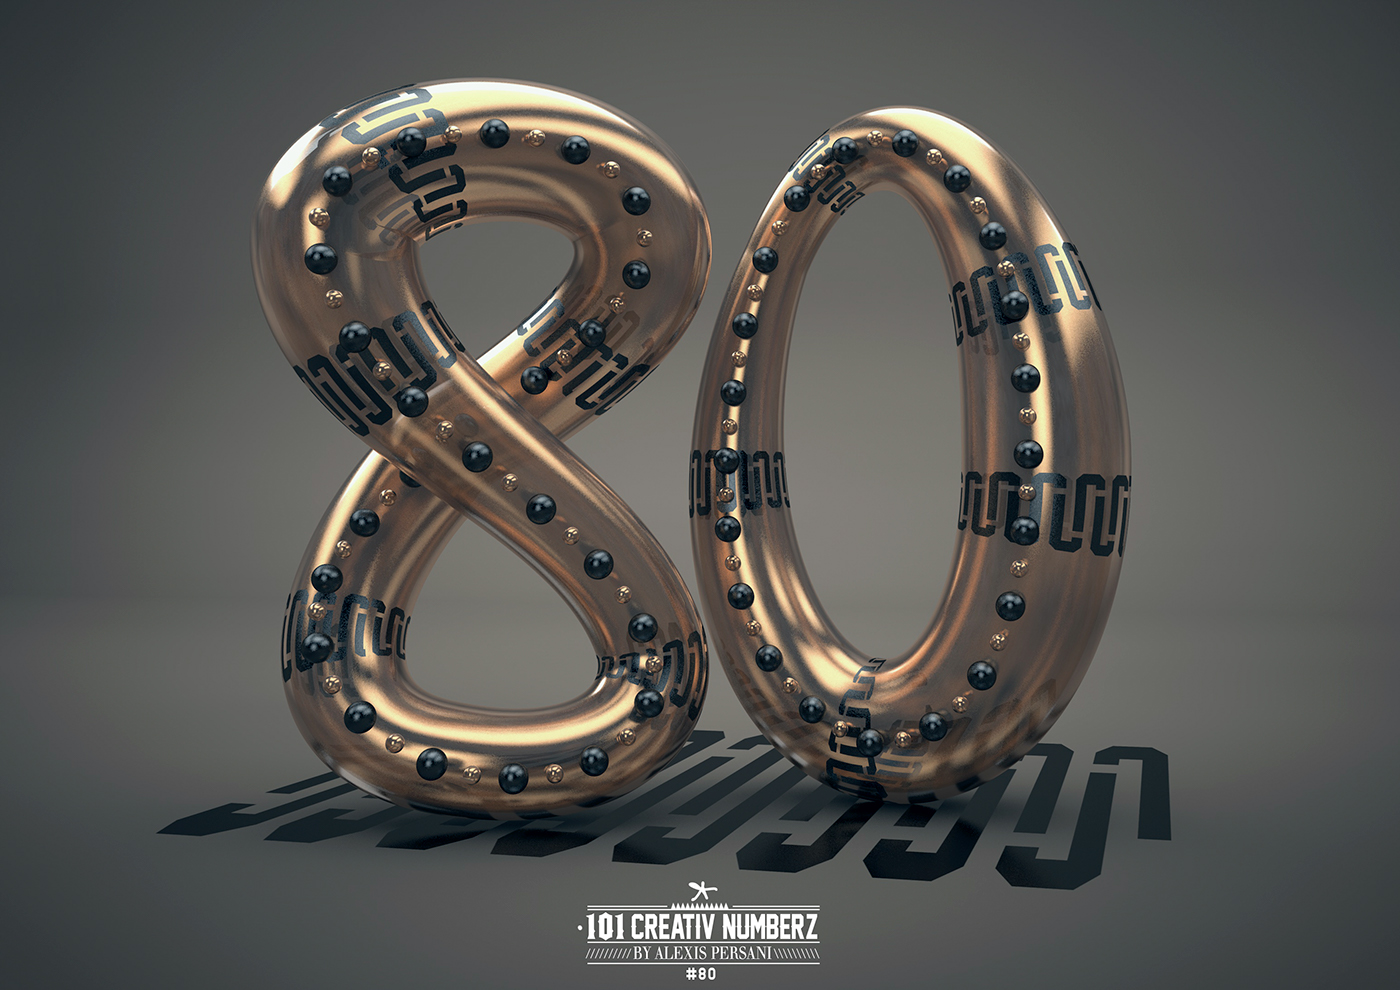 Outstanding 101 Creative Numbers Typography by Alexis Persani 74